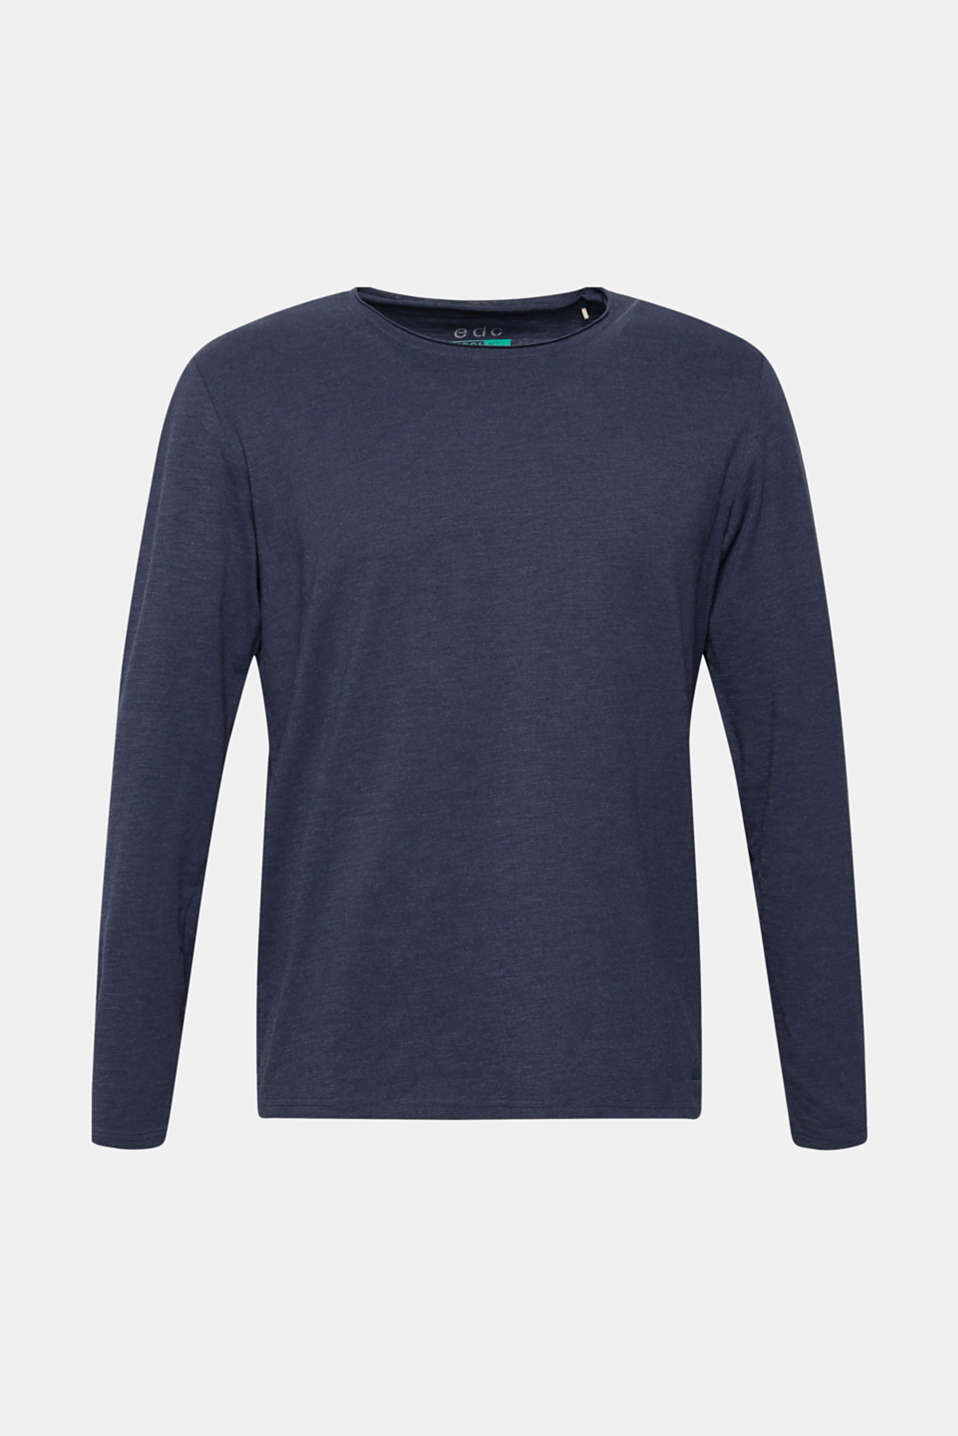 Long sleeve jersey top in blended cotton, NAVY, detail image number 7